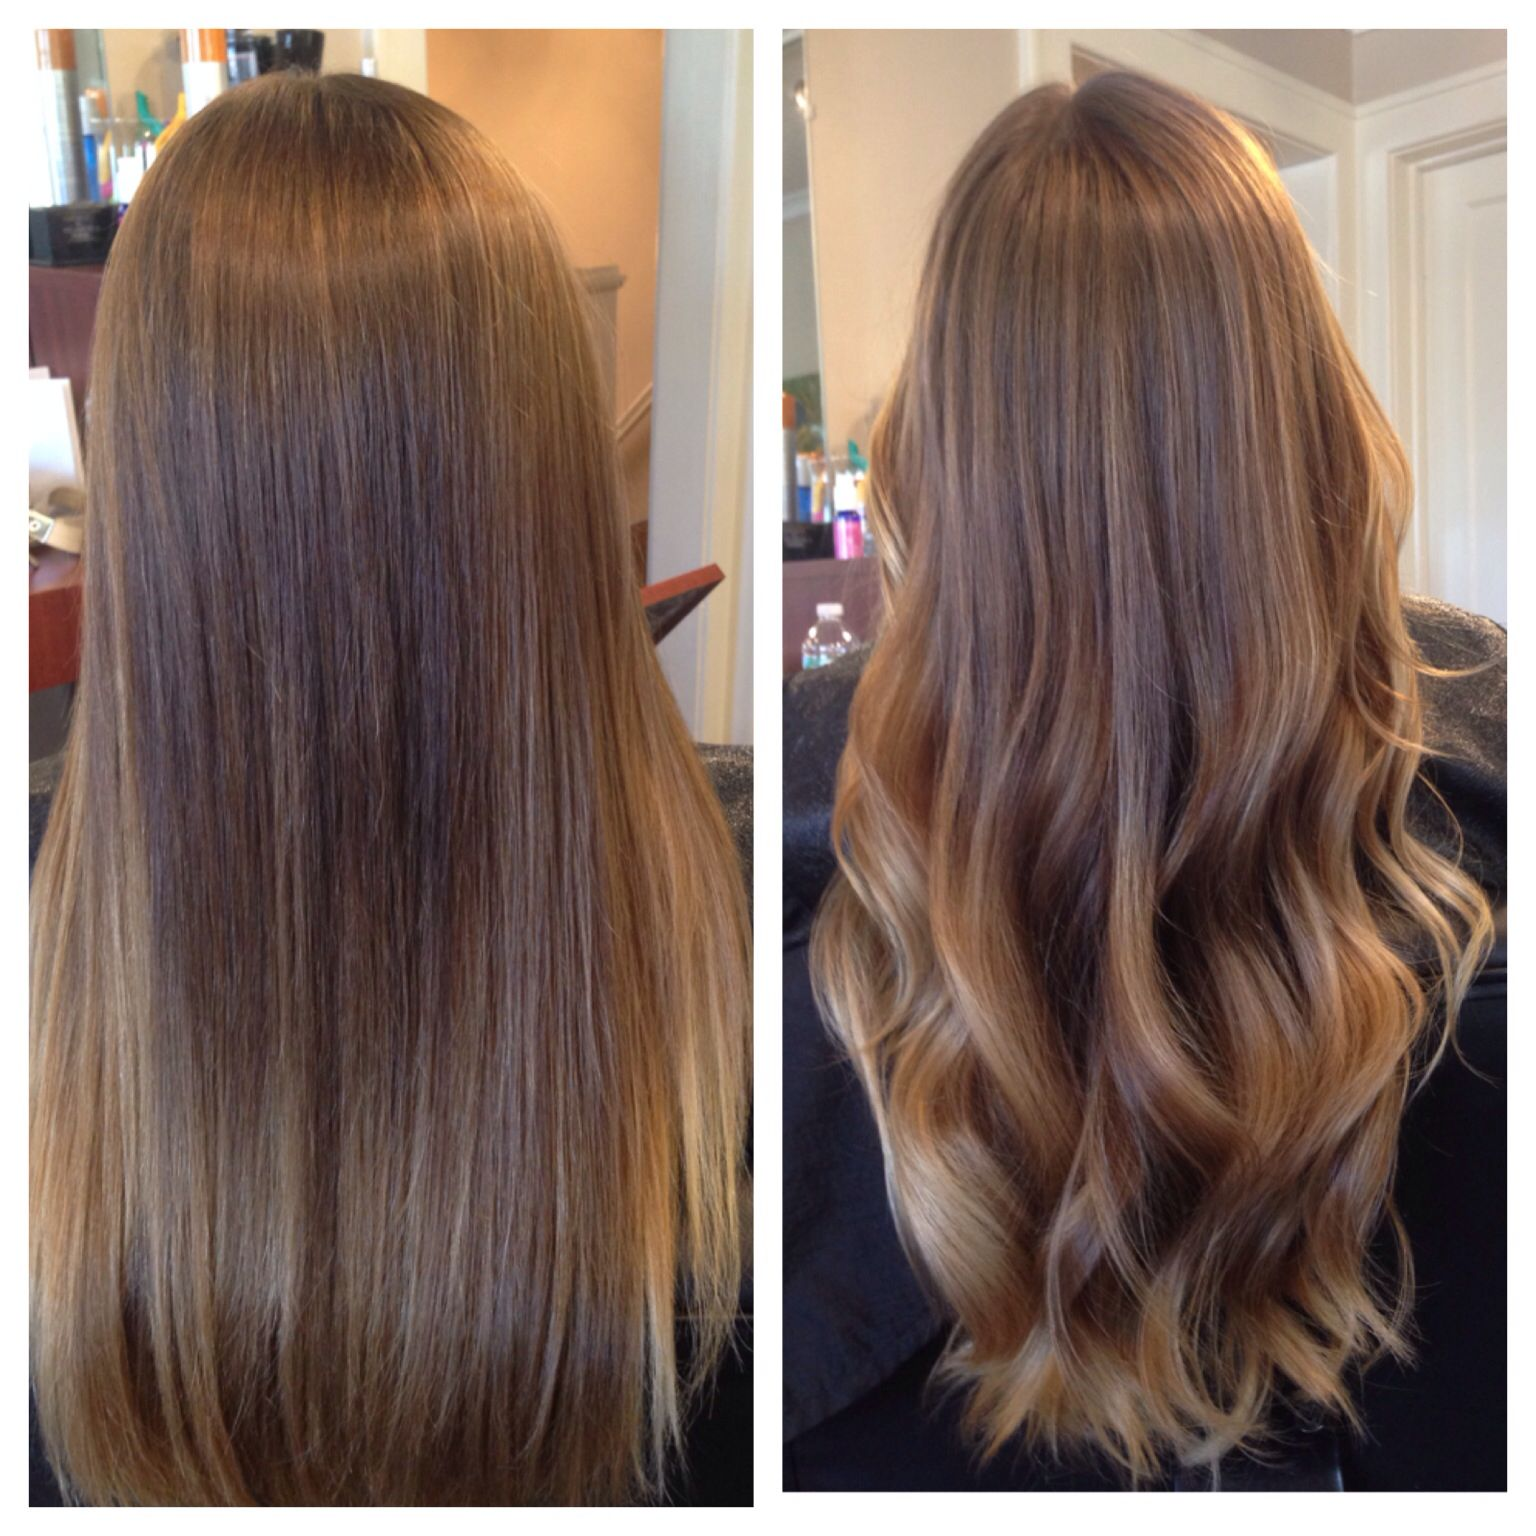 Behind The Chair Ombre Balayage Ombre Done Well Means You Can Go Straight Or Wavy